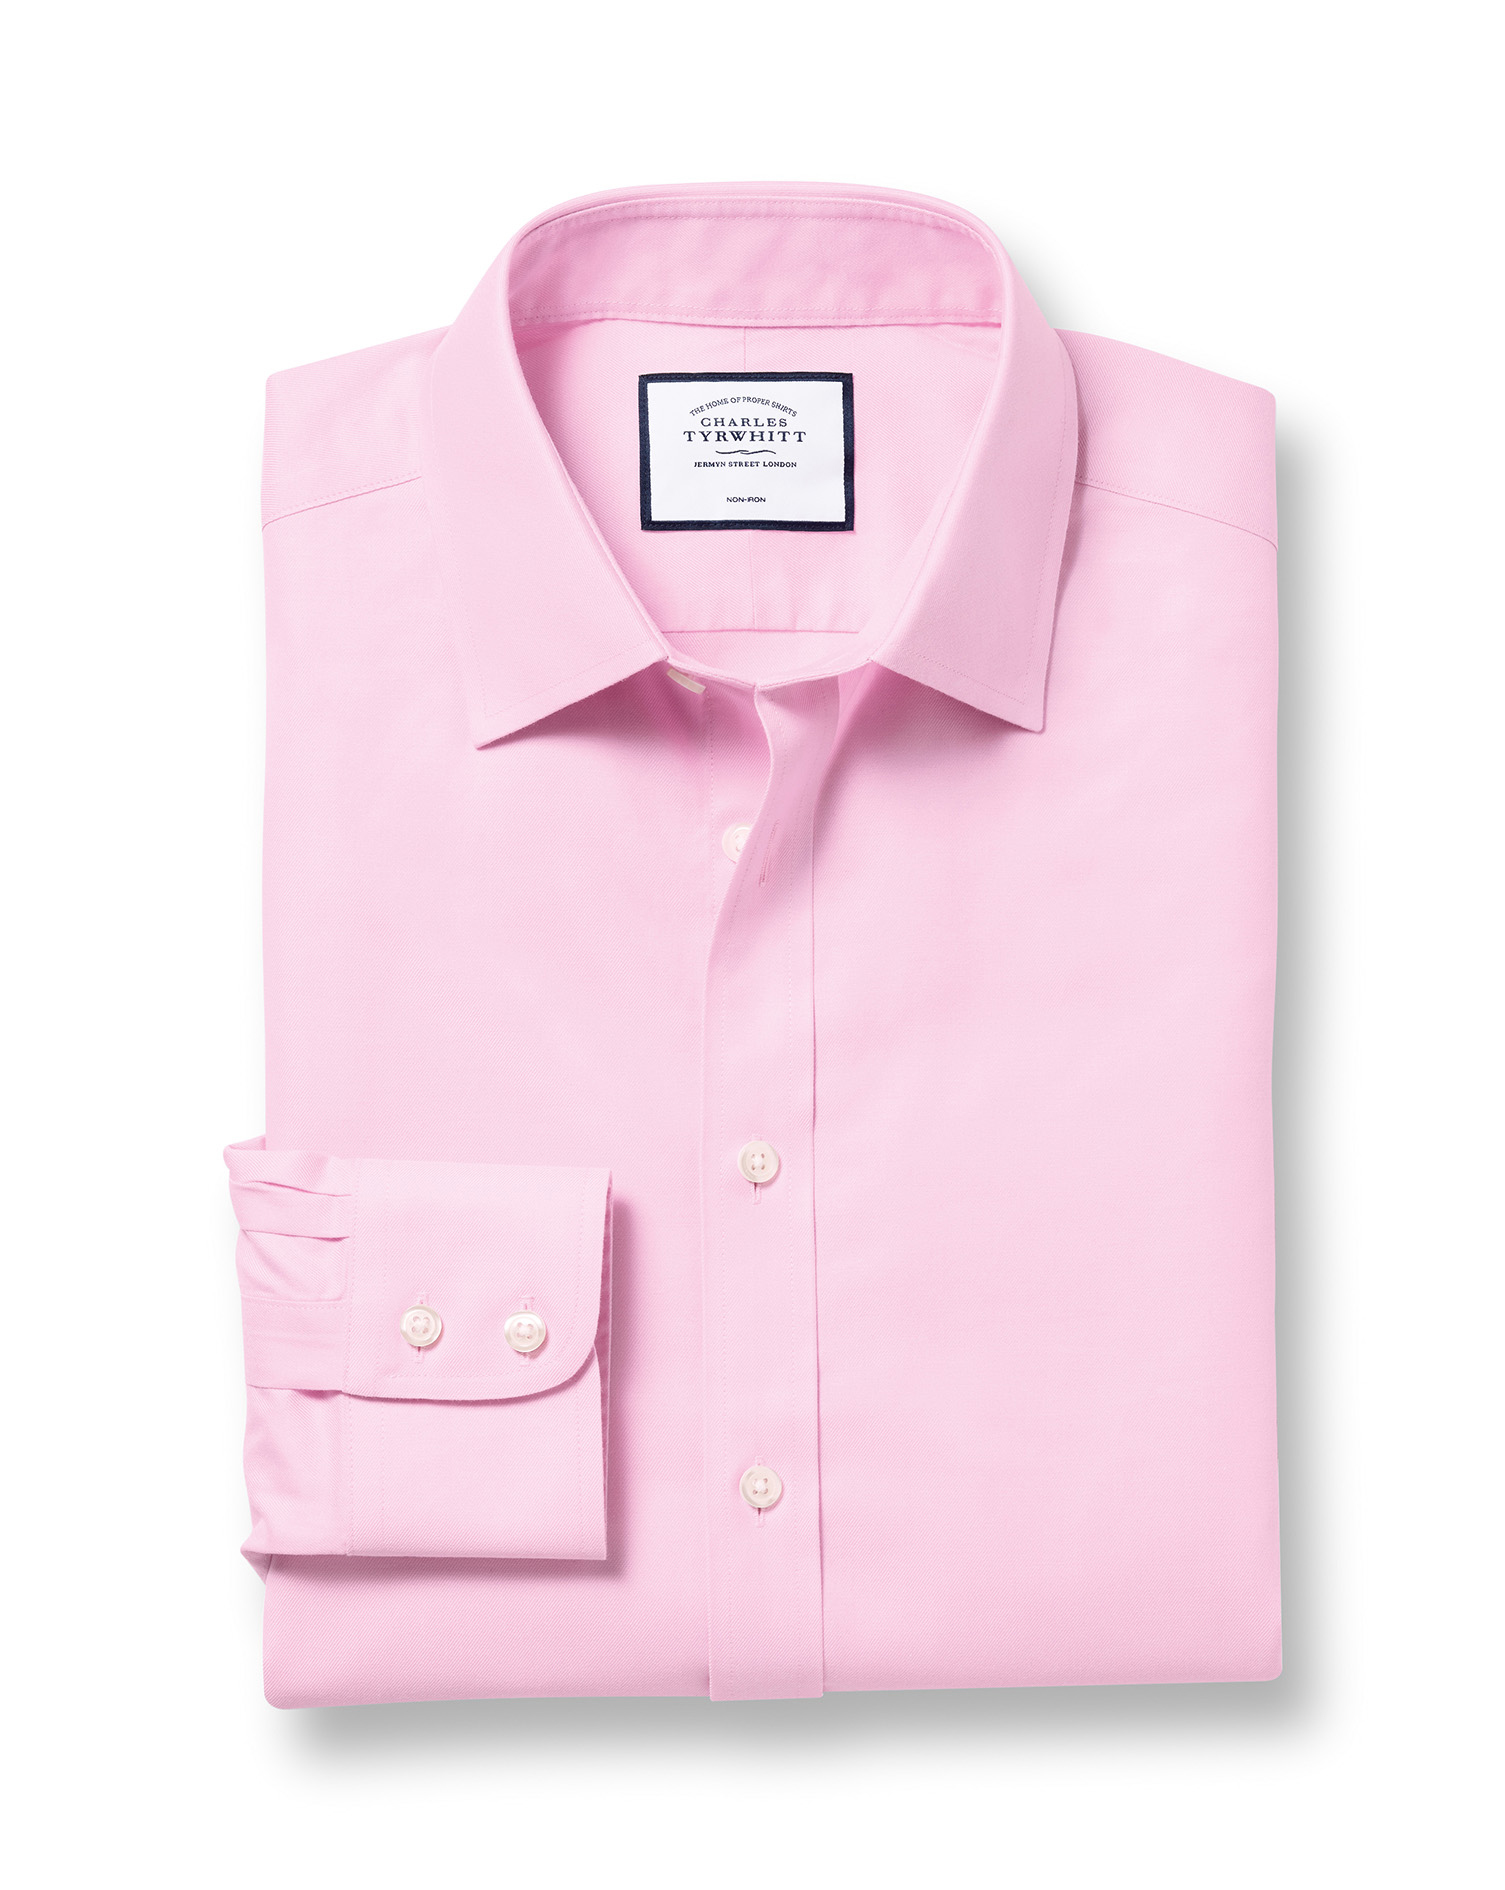 Classic Fit Non-Iron Twill Pink Cotton Formal Shirt Single Cuff Size 16/33 by Charles Tyrwhitt